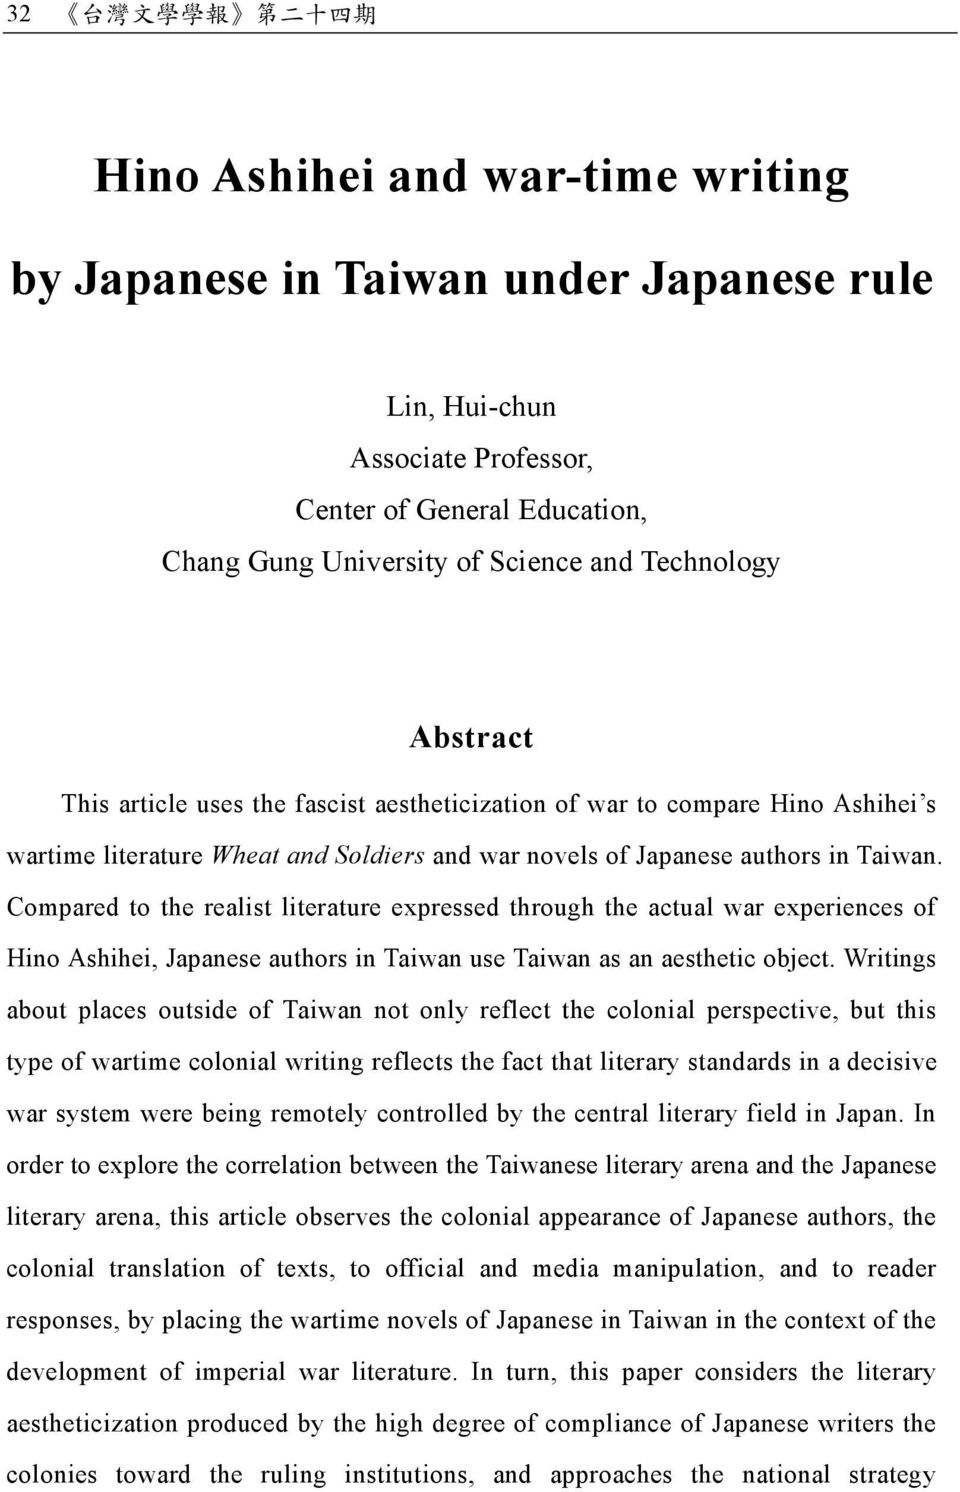 Compared to the realist literature expressed through the actual war experiences of Hino Ashihei, Japanese authors in Taiwan use Taiwan as an aesthetic object.